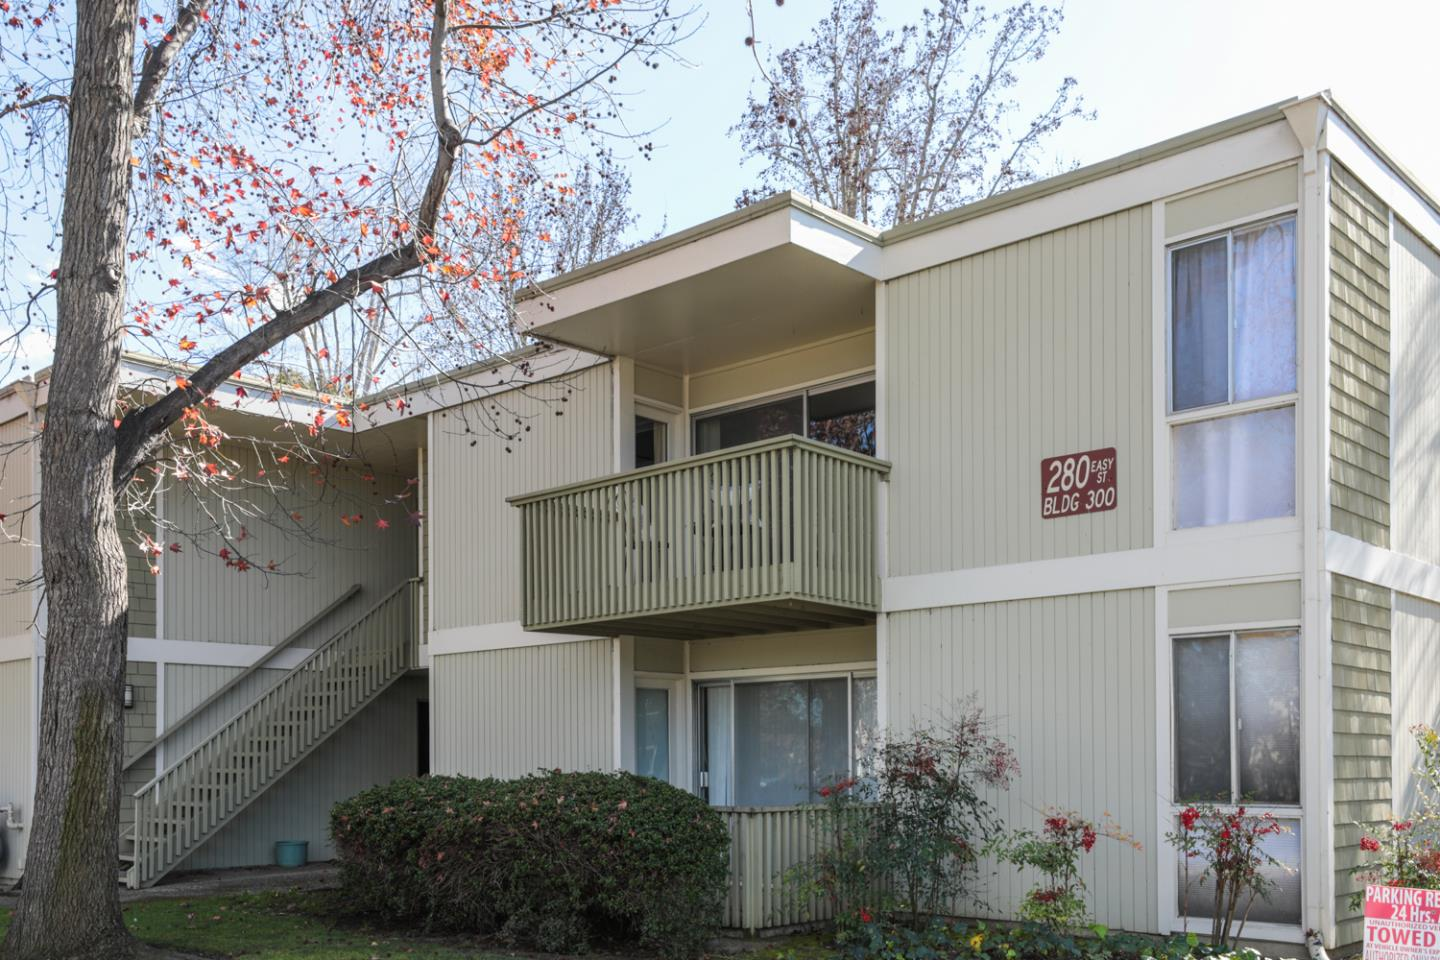 280 Easy ST 310, MOUNTAIN VIEW, California